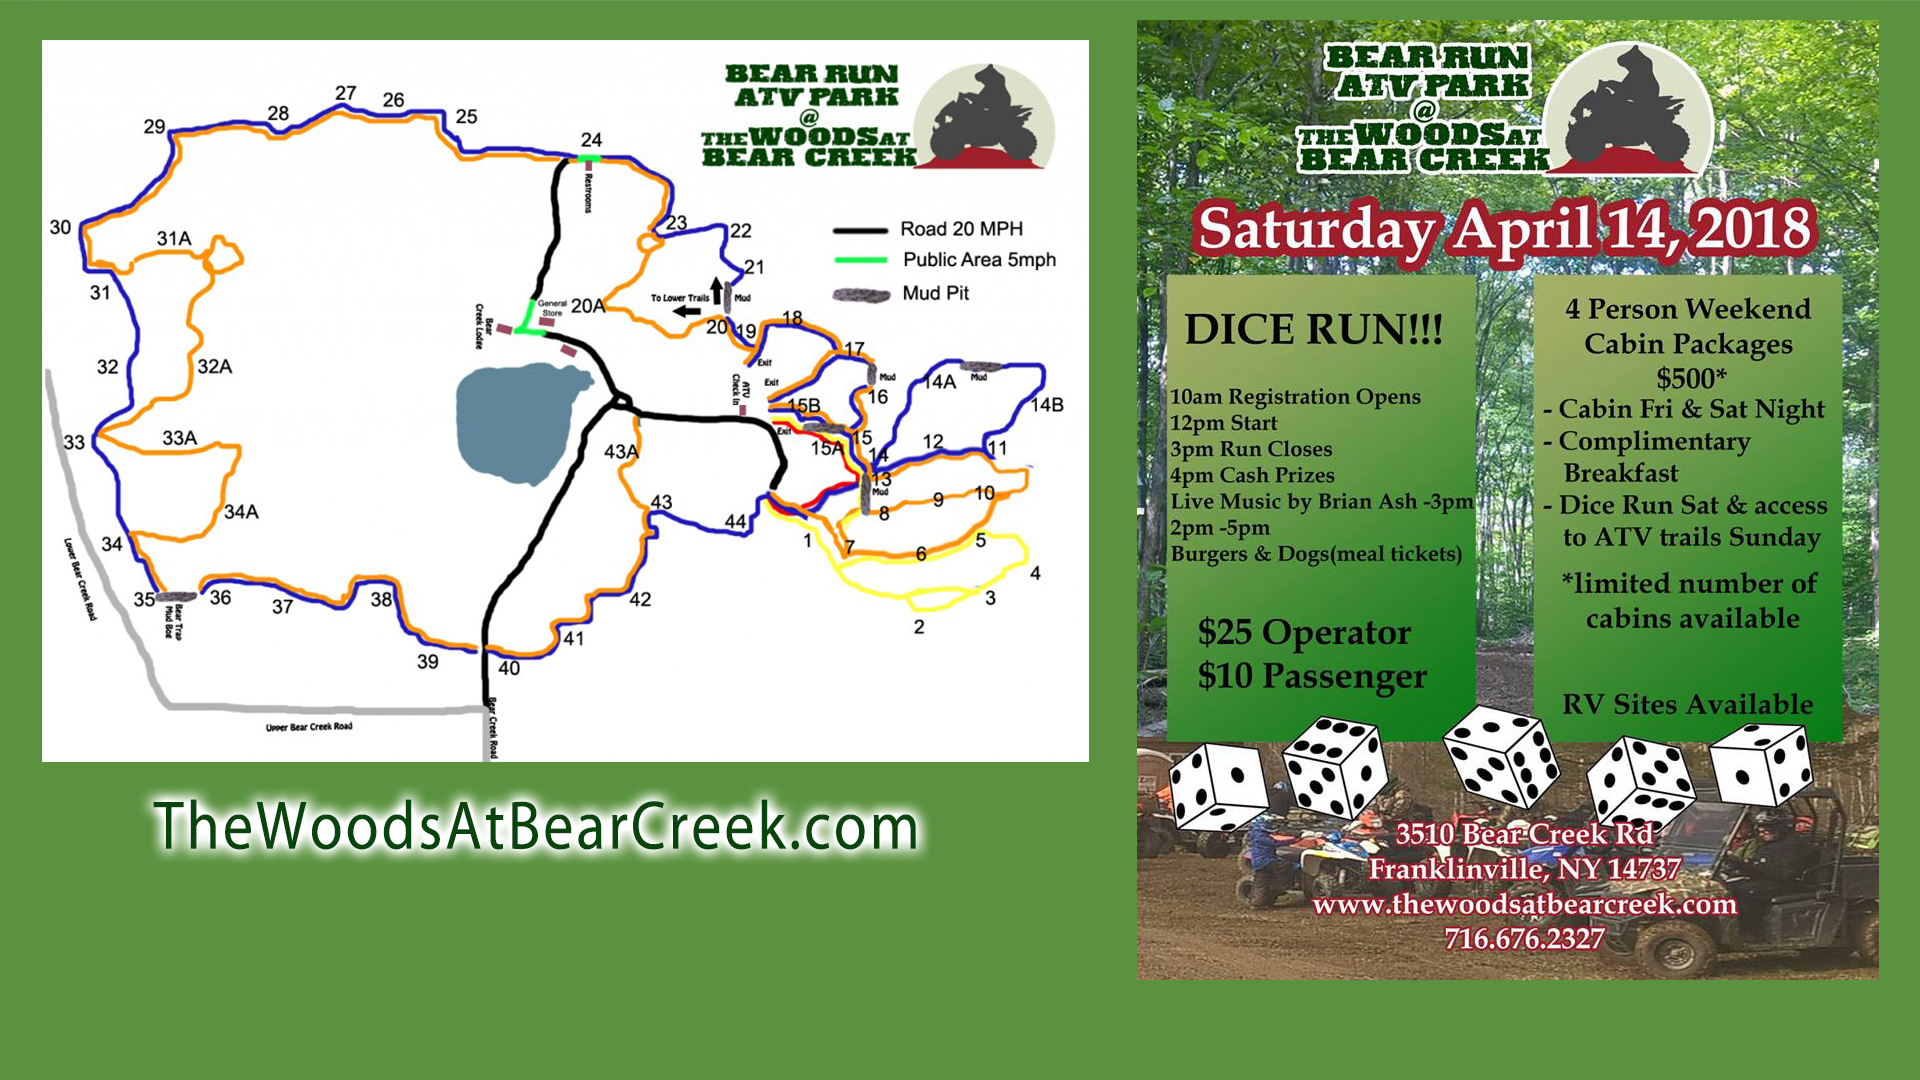 2018 Woods at Bear Creek ATV Dice Run